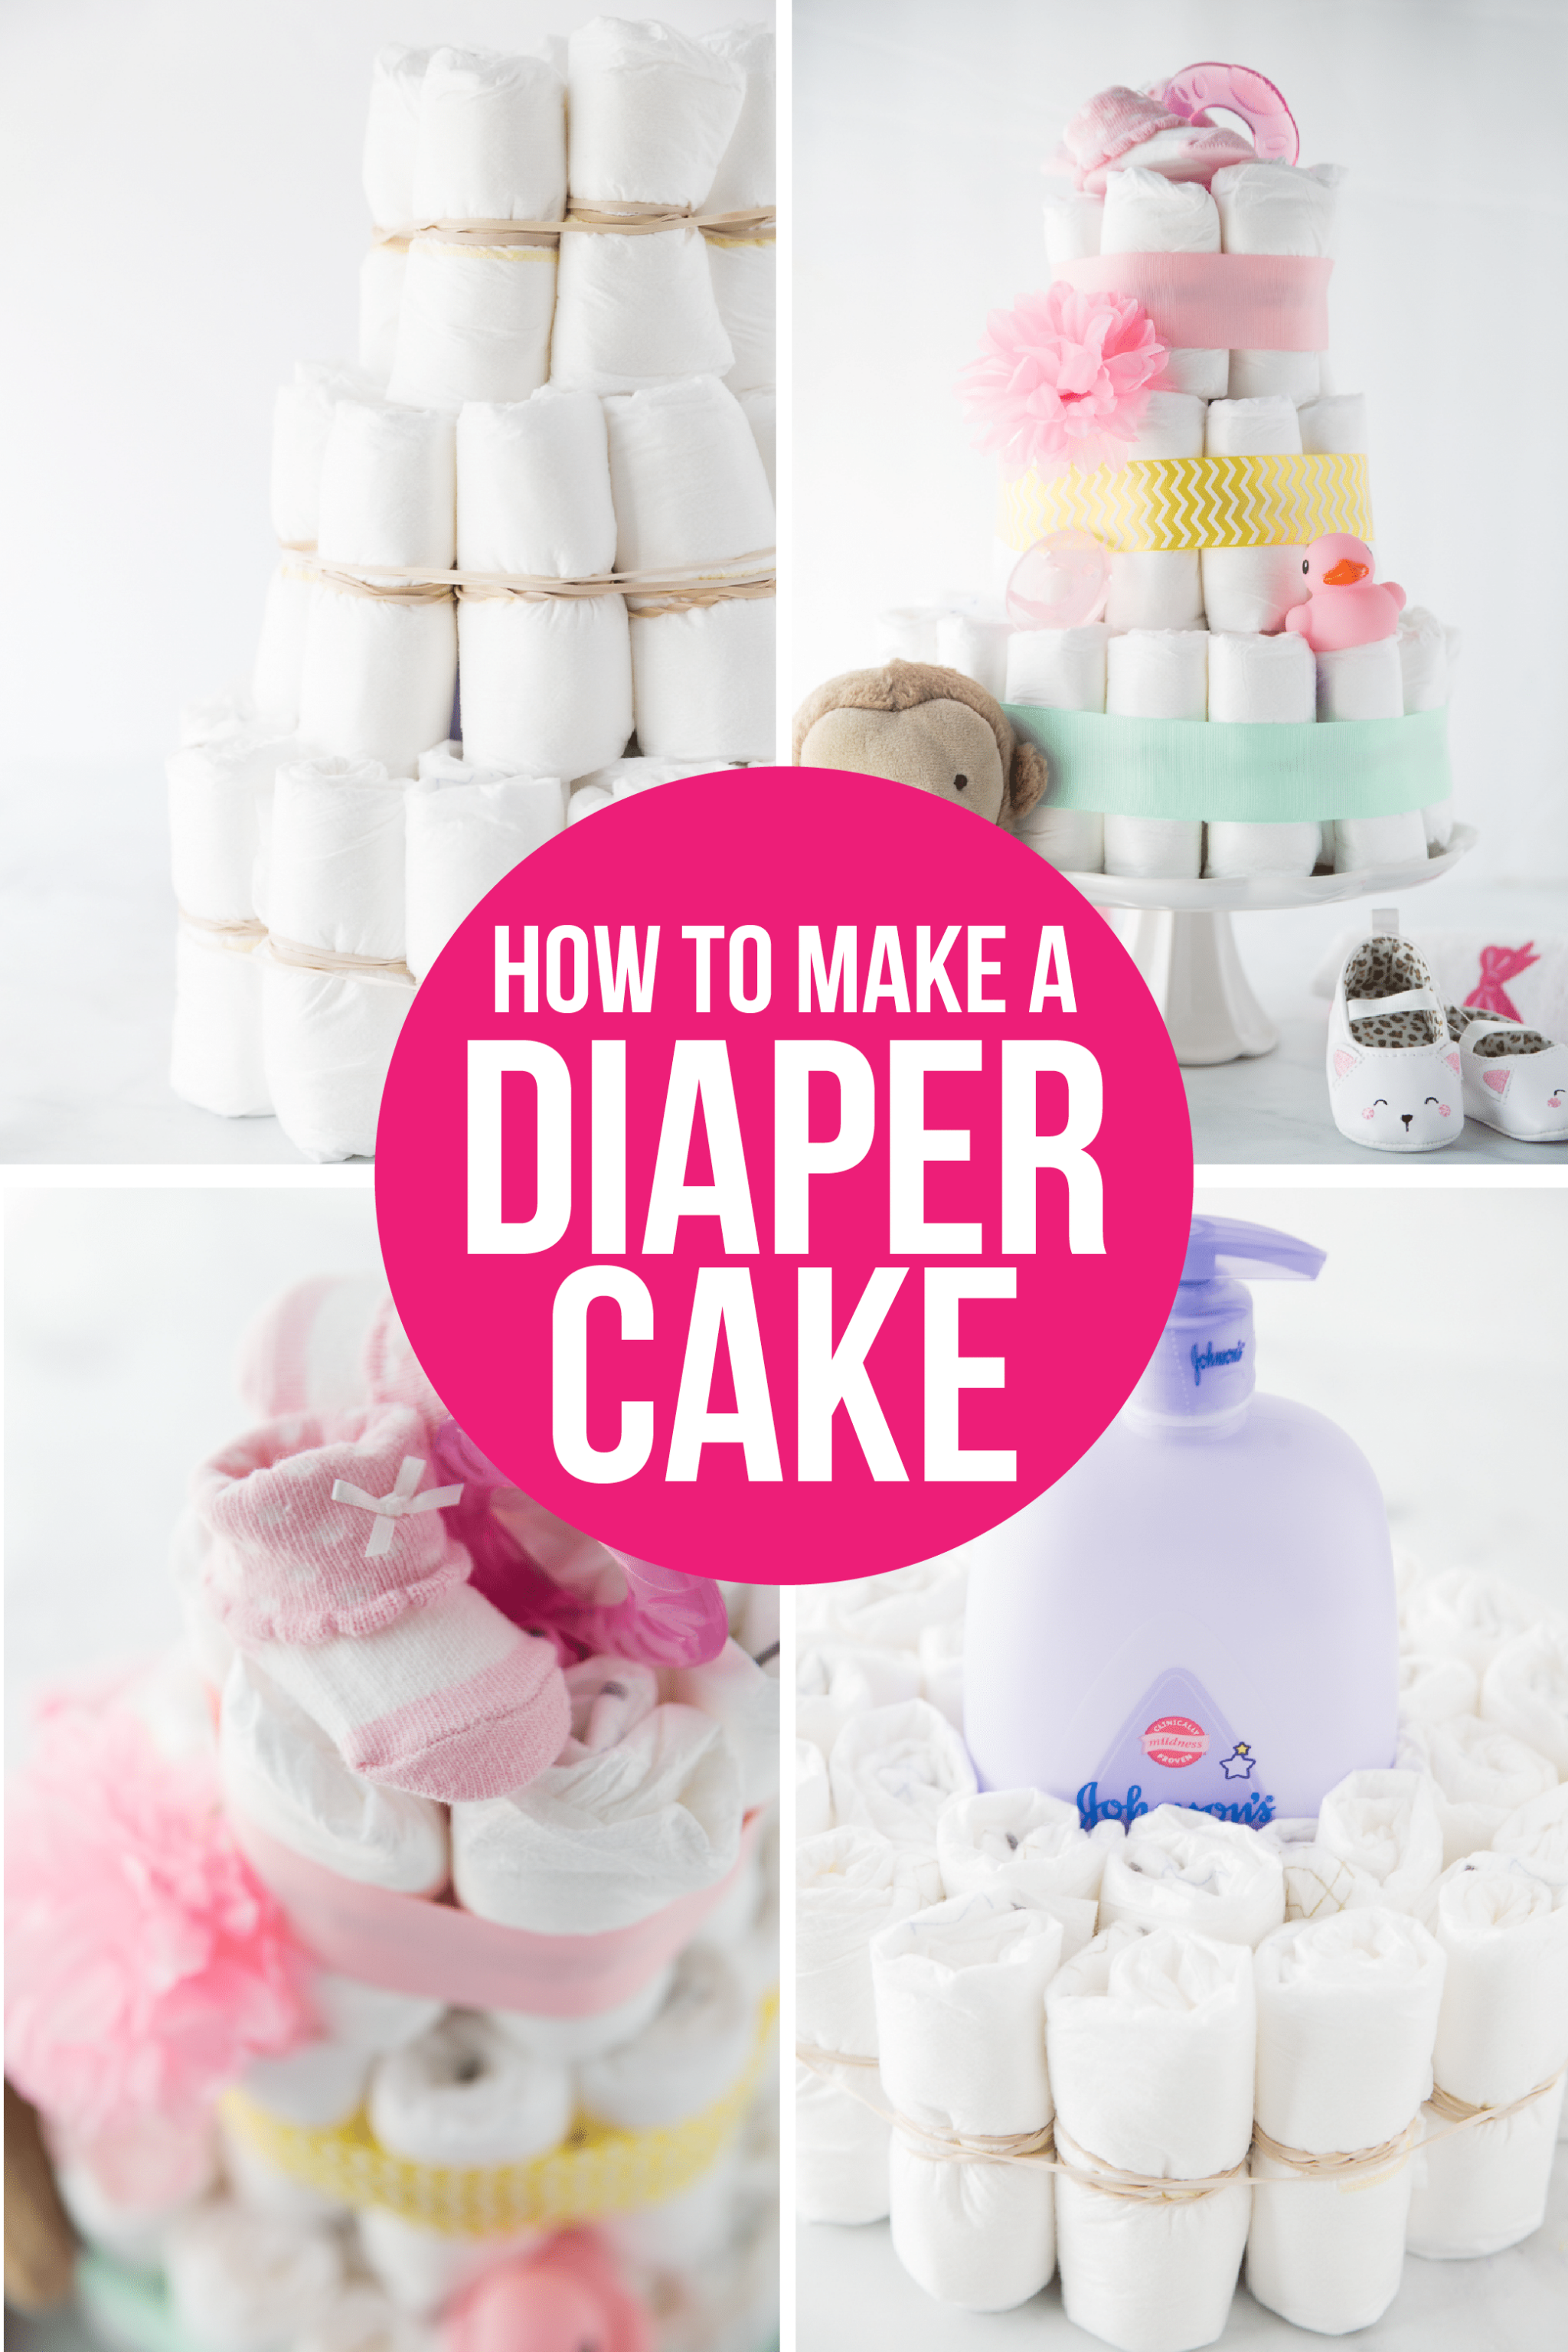 A simple DIY diaper cake tutorial showing you in photos and video how to make a diaper cake as well as other great diaper cake ideas! Learn how to make an easy diaper cake in just a few minutes. via @playpartyplan